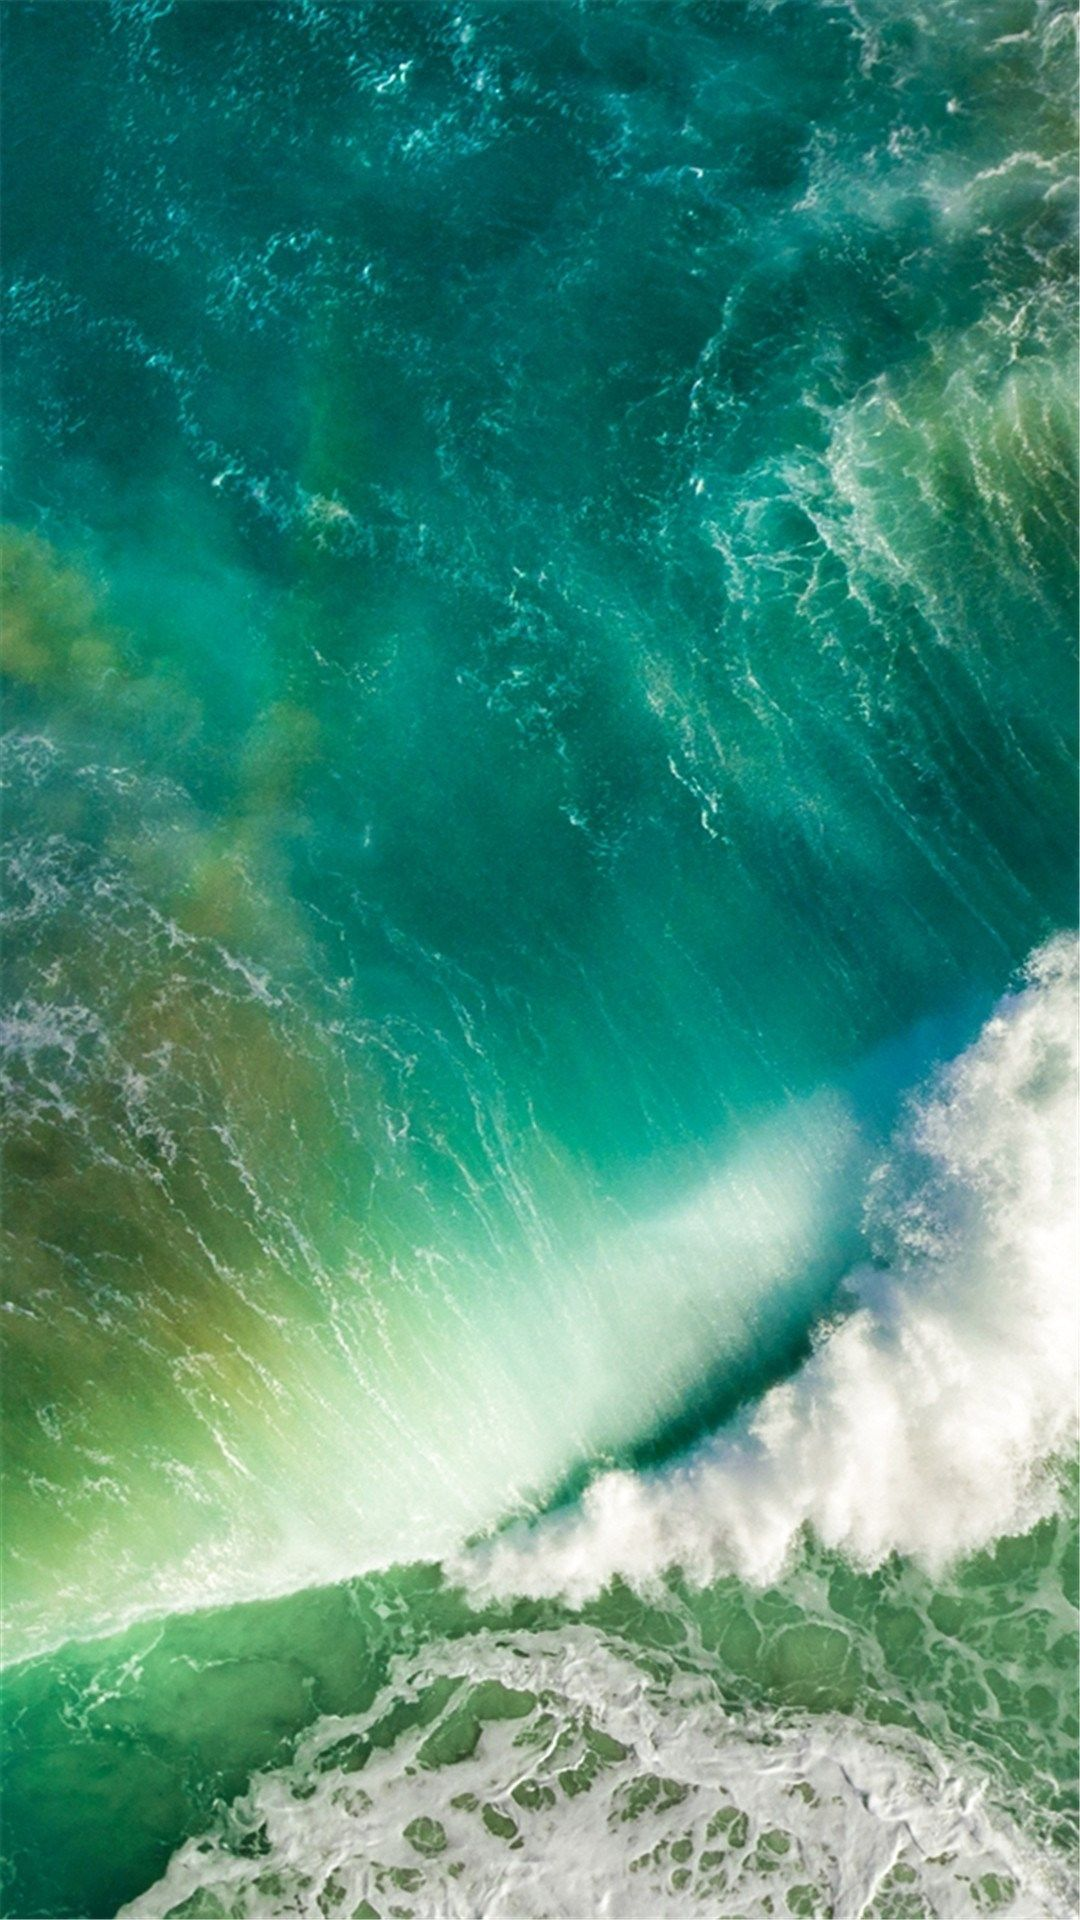 Water Iphone Wallpapers Top Free Water Iphone Backgrounds